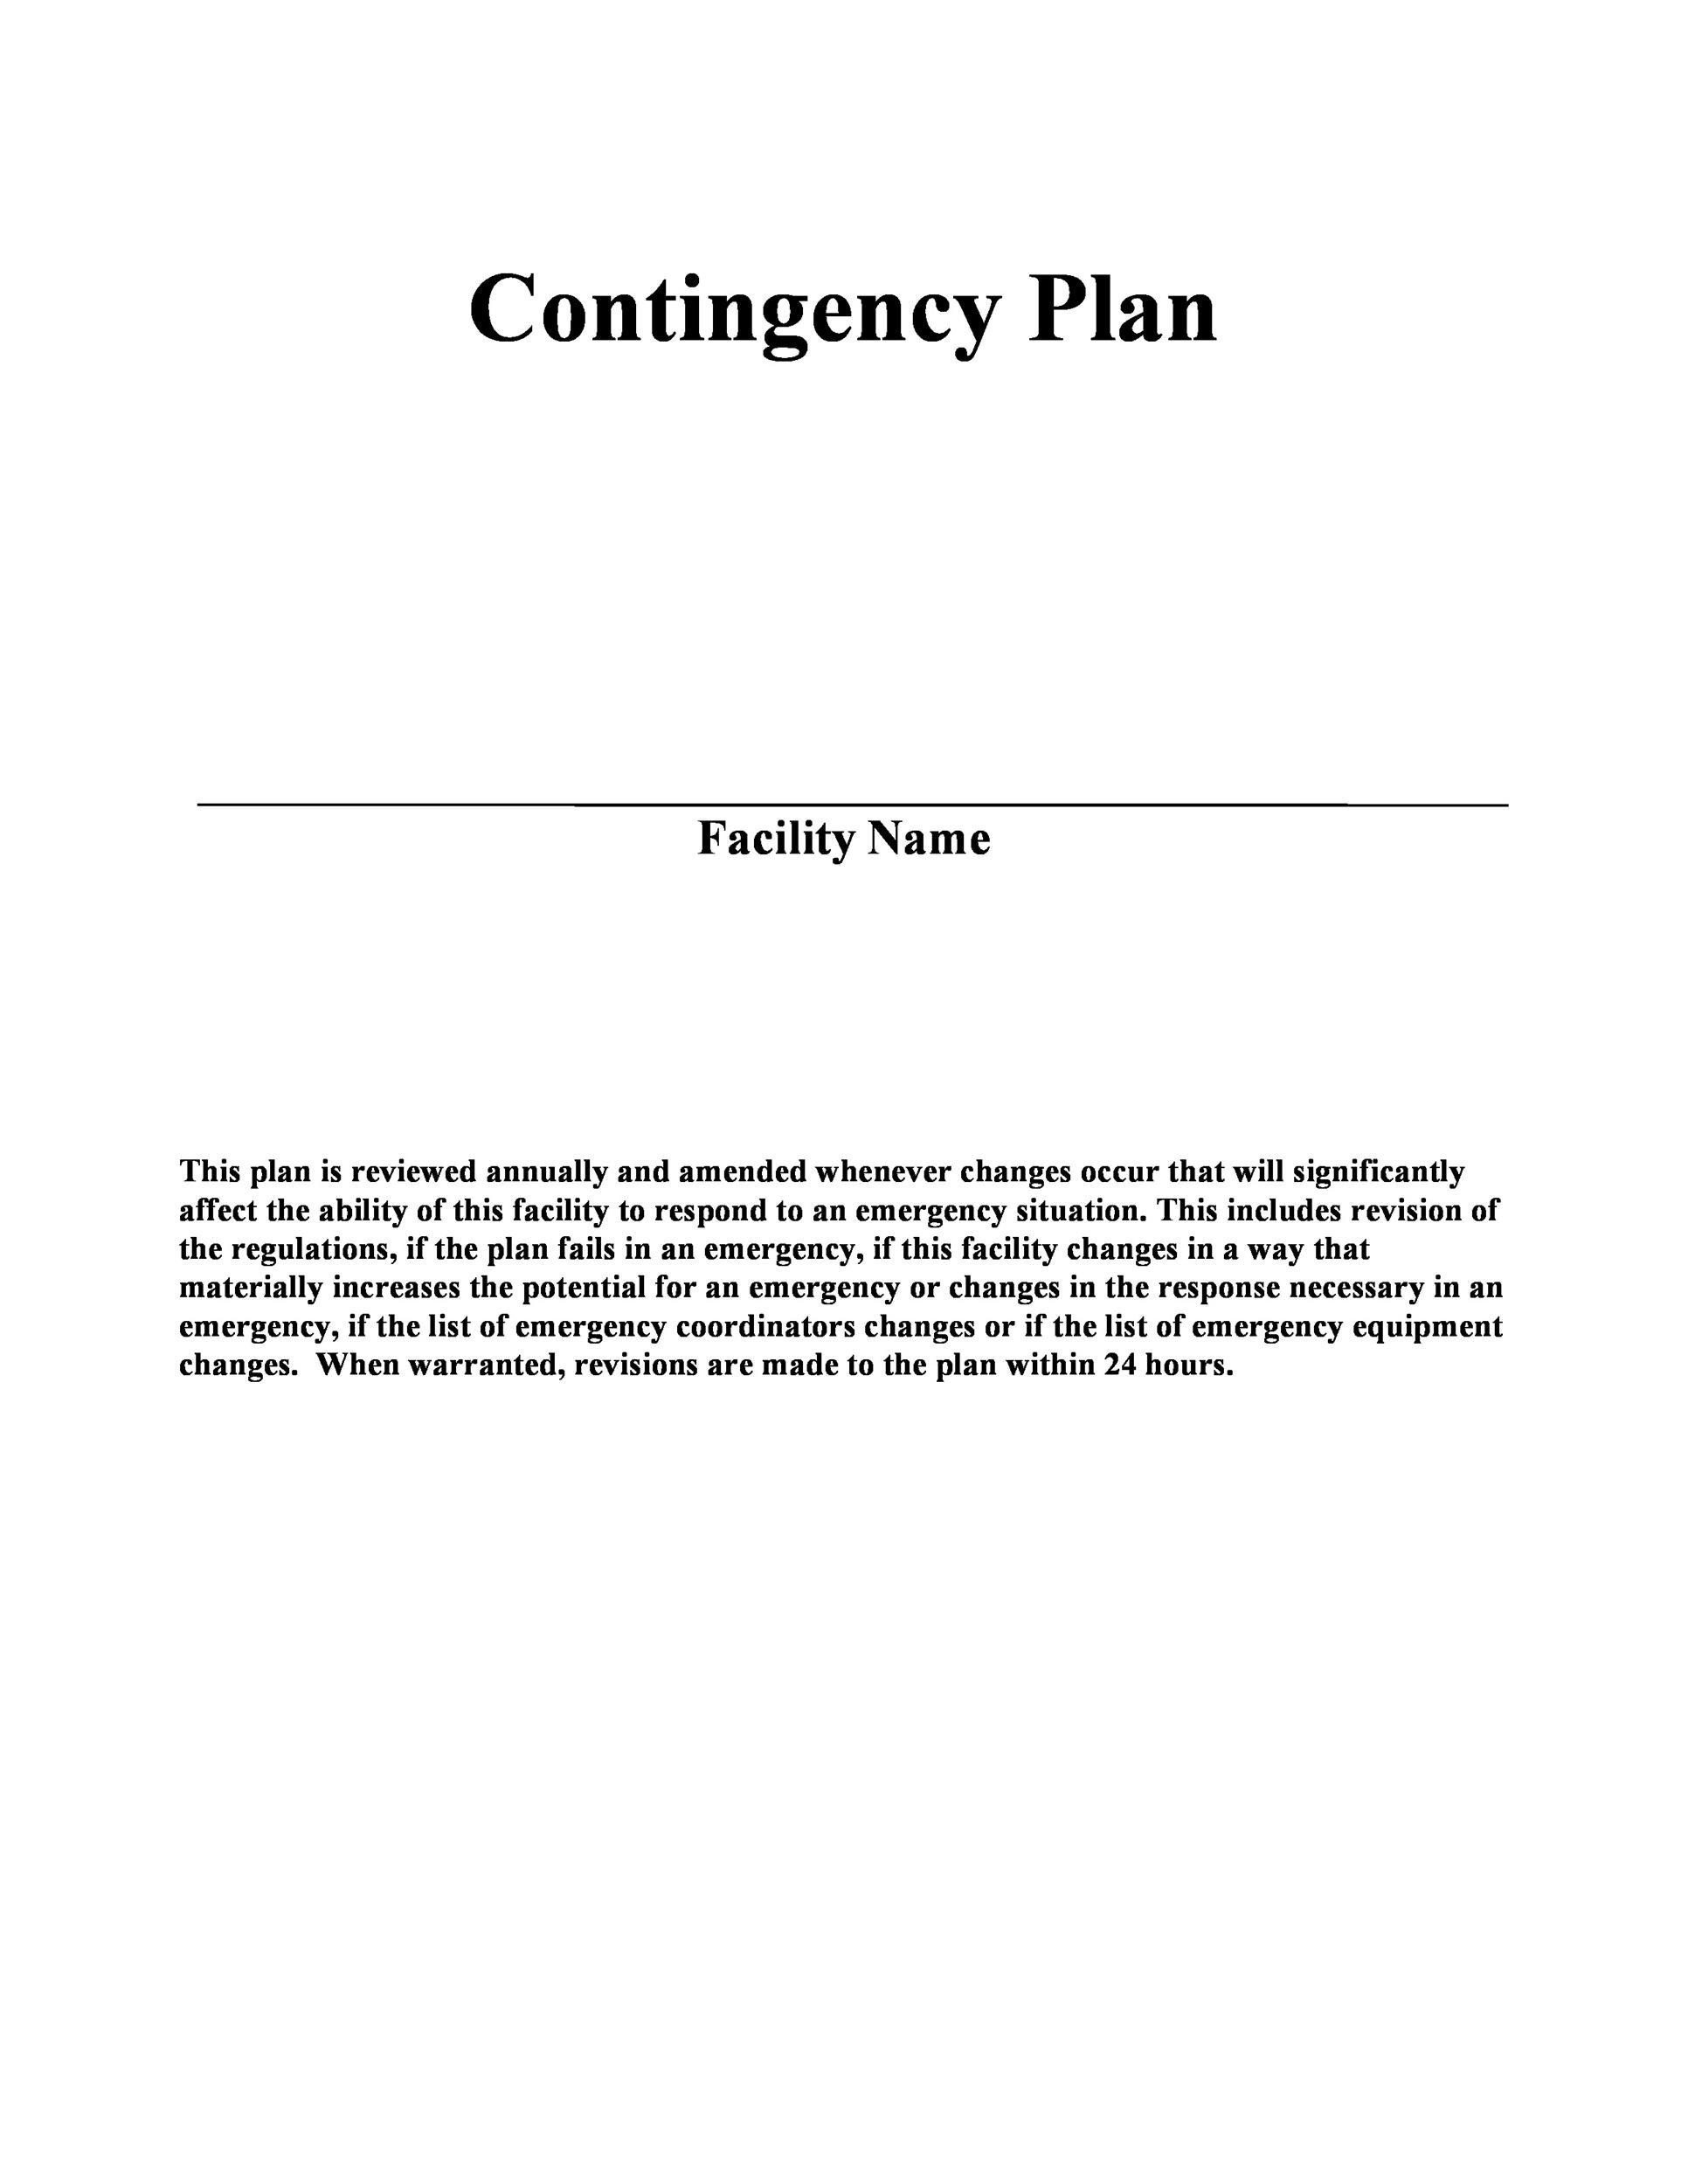 Free contingency plan template 19